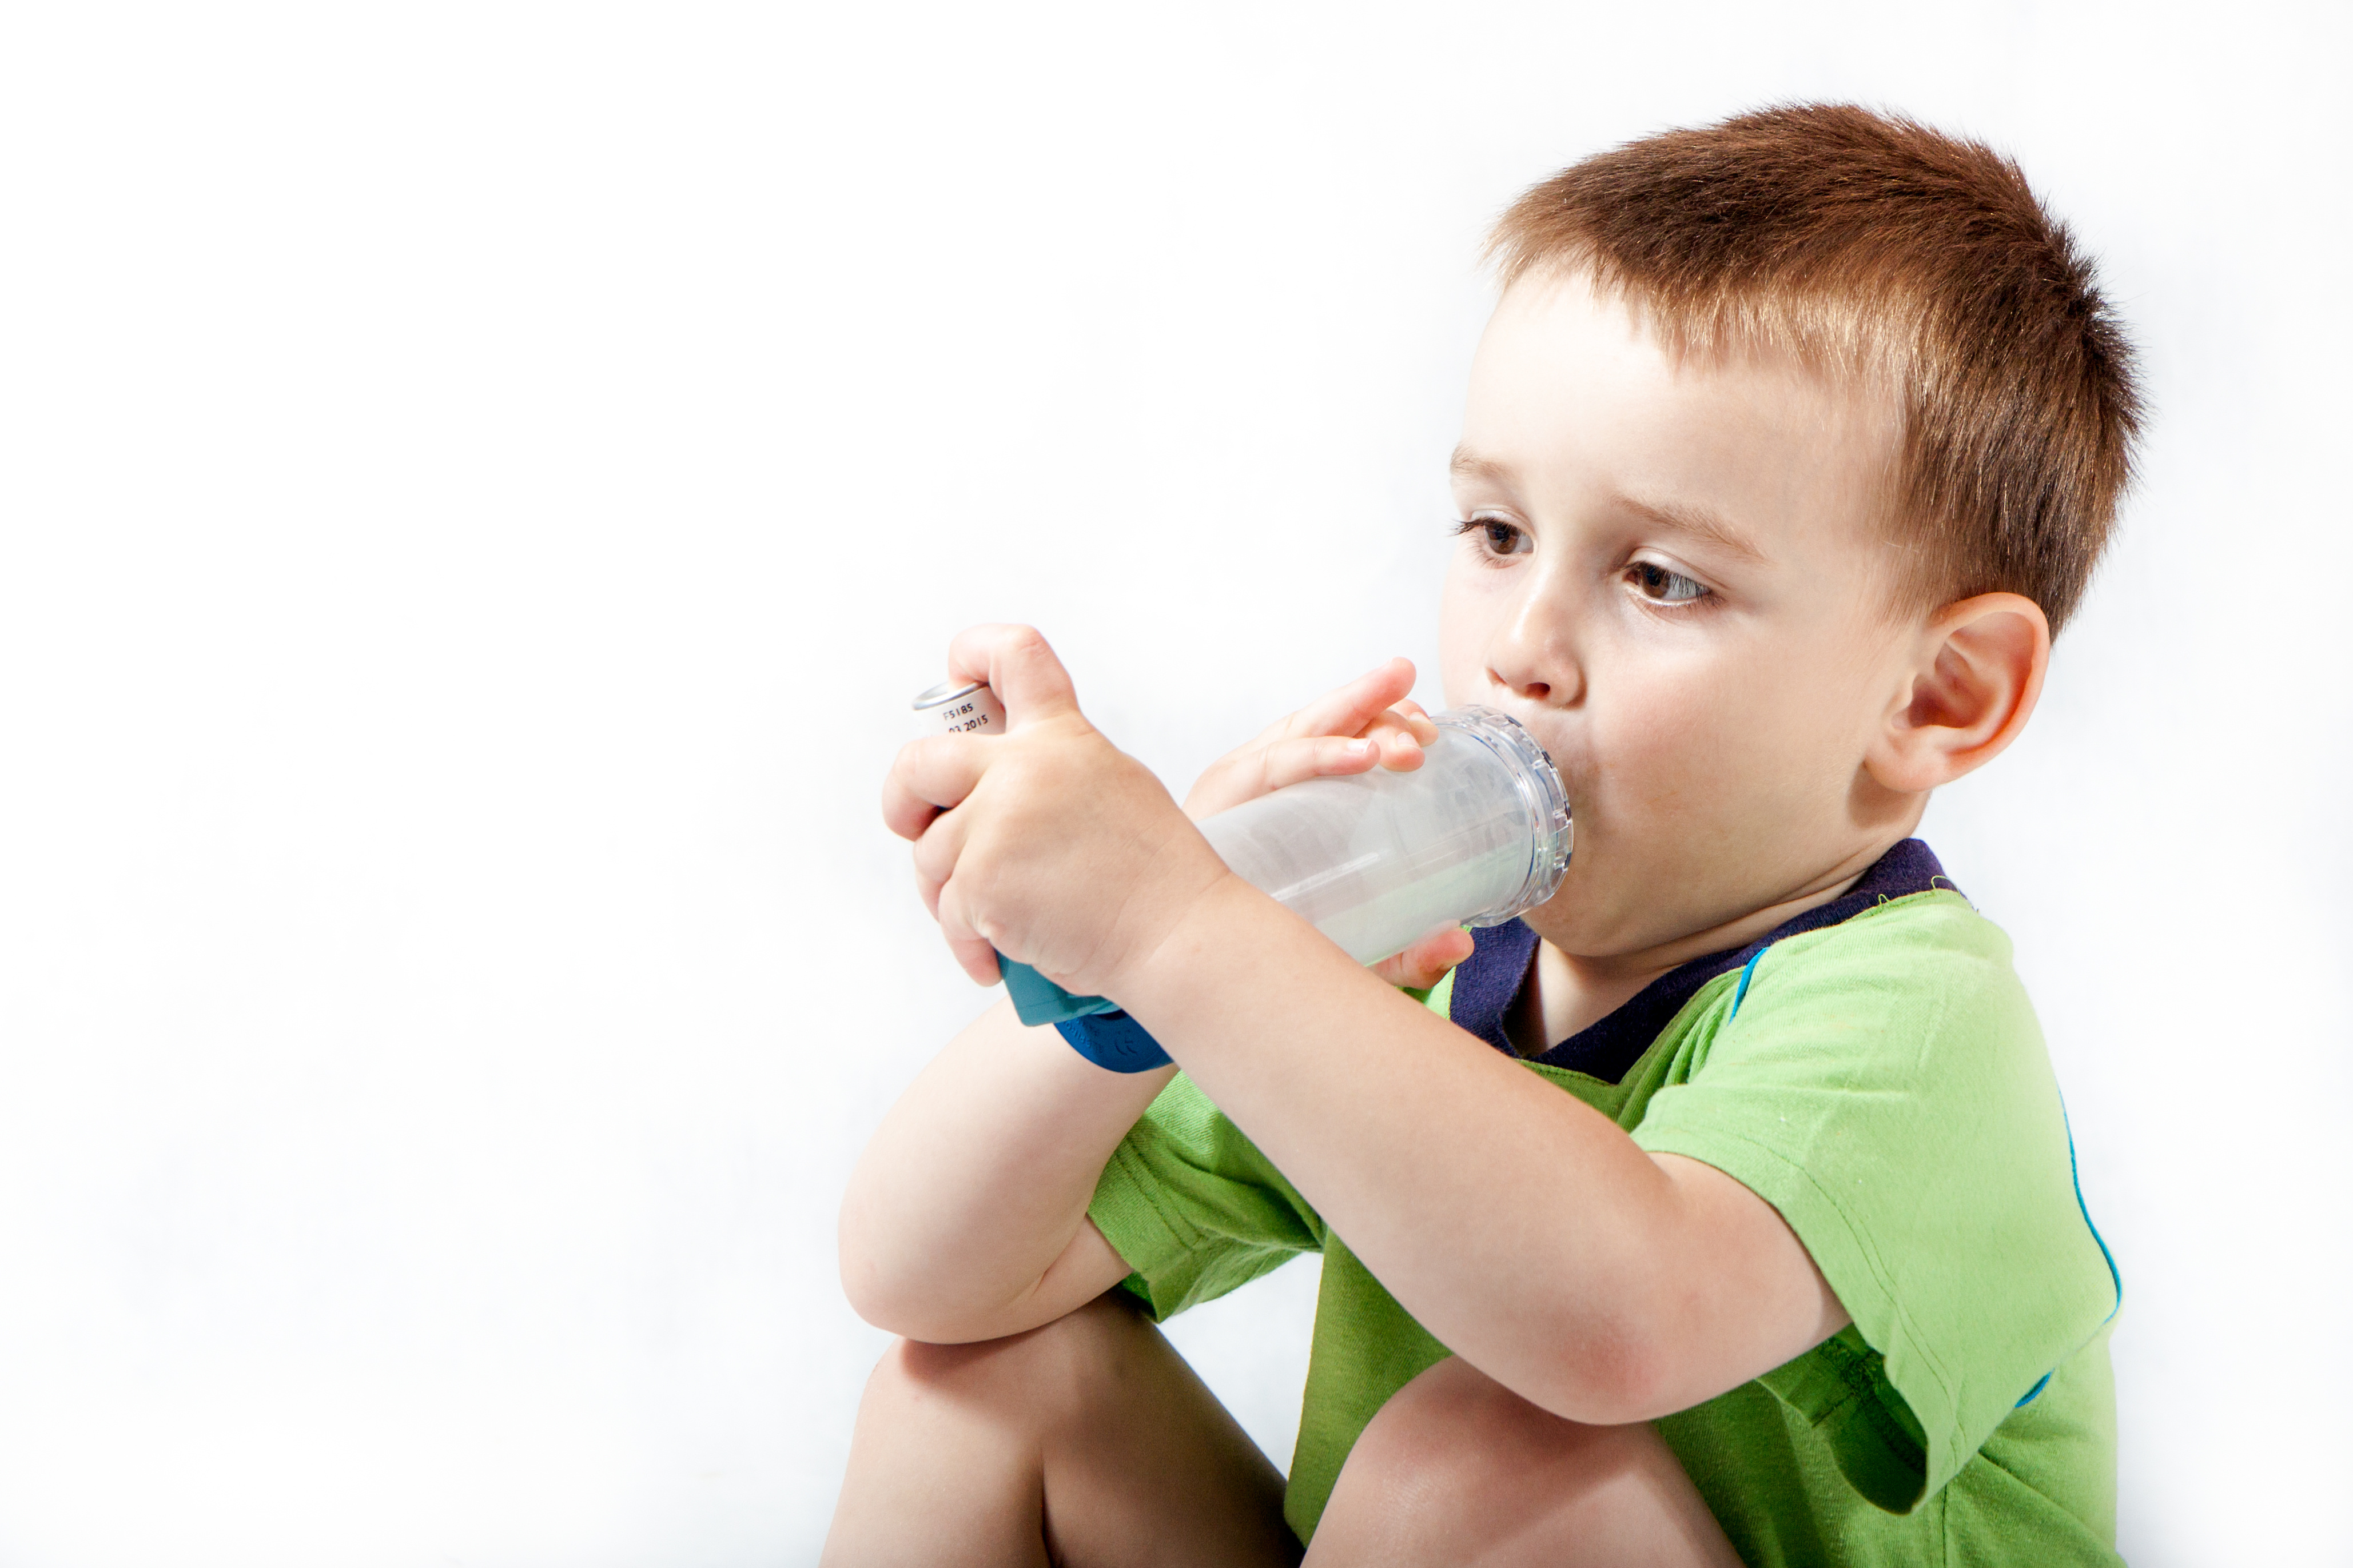 Little boy using inhaler for asthma isolated on white background